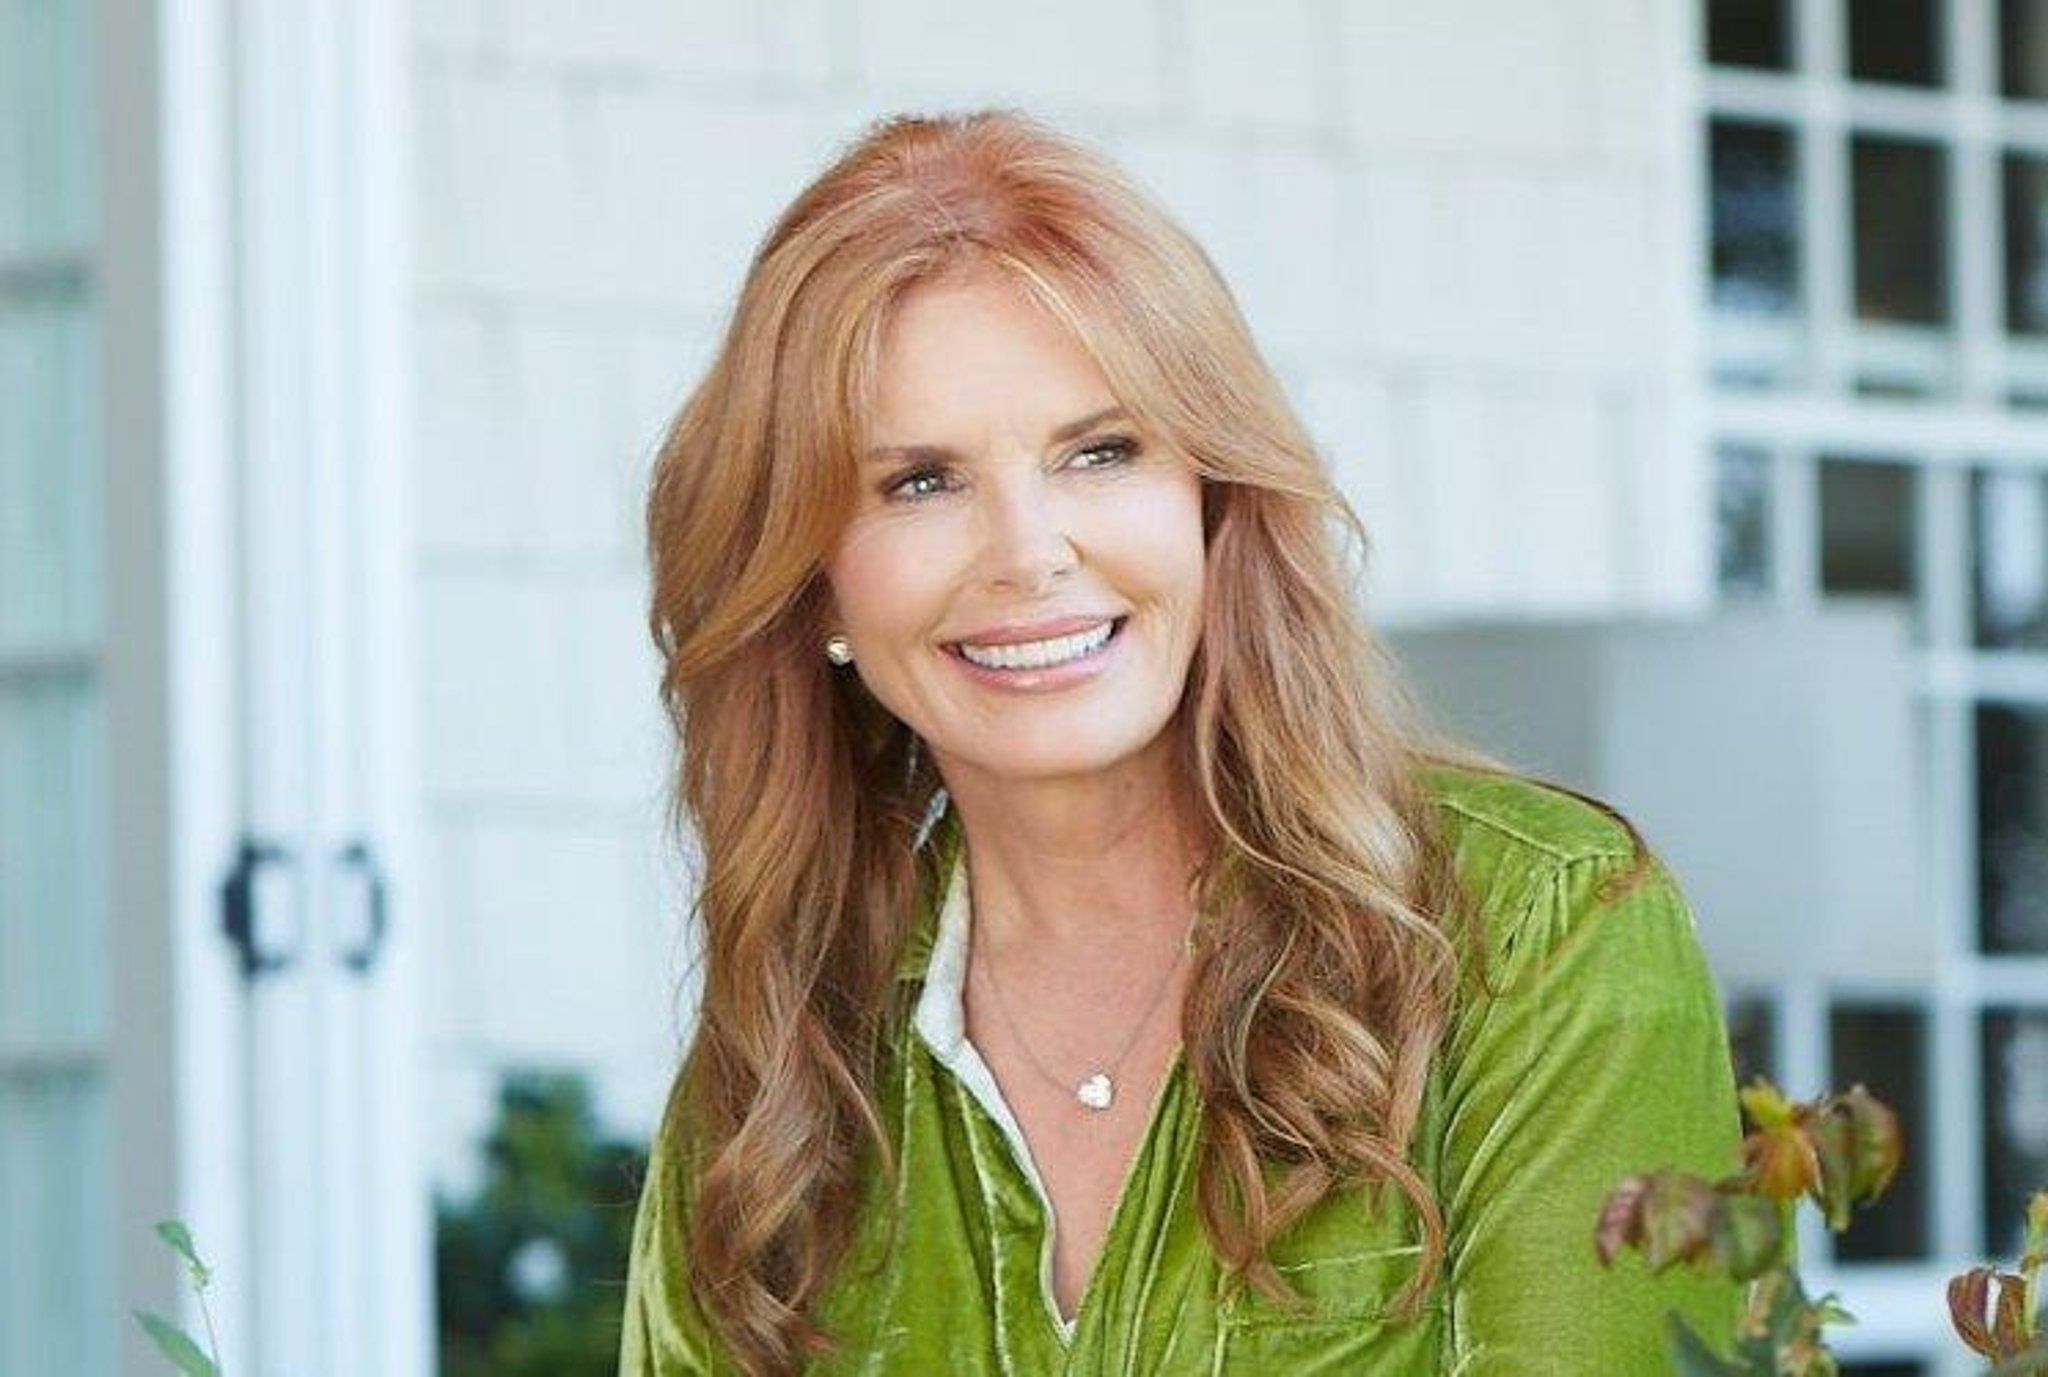 Derry actress and producer Roma Downey awarded OBE in Honours List